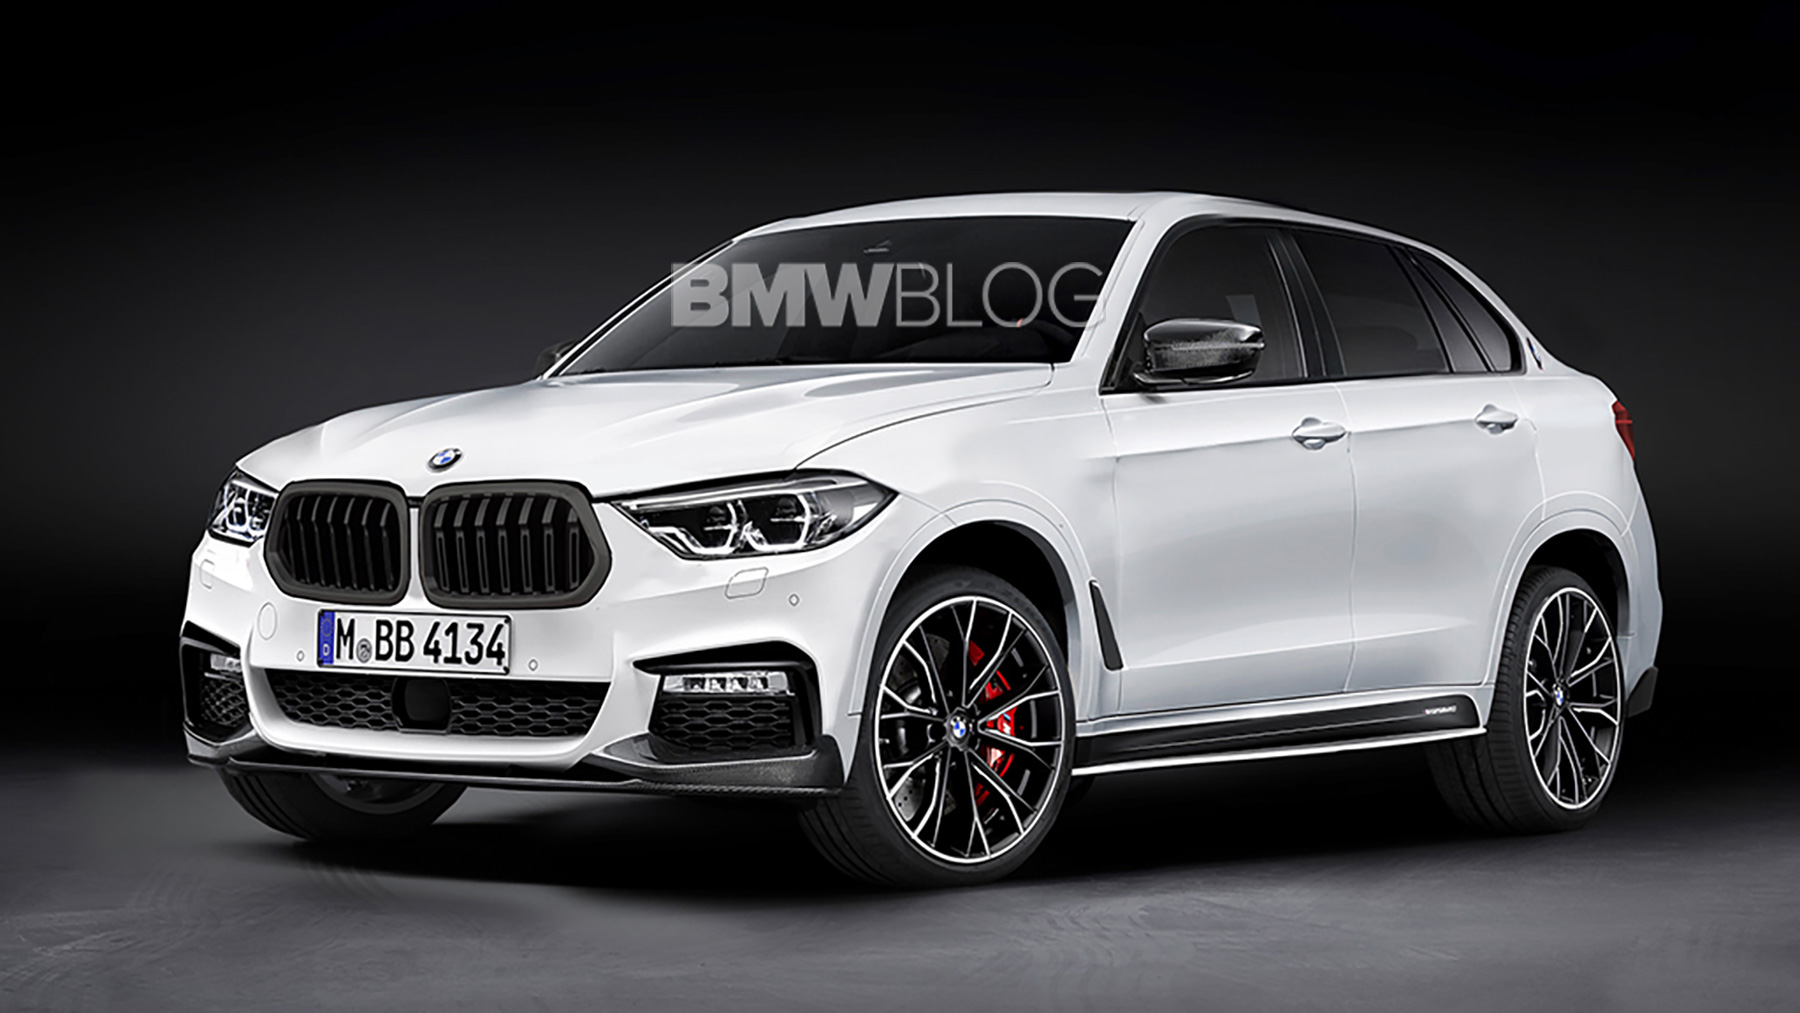 Exclusive Bmw X8 Is Being Considered In Munich